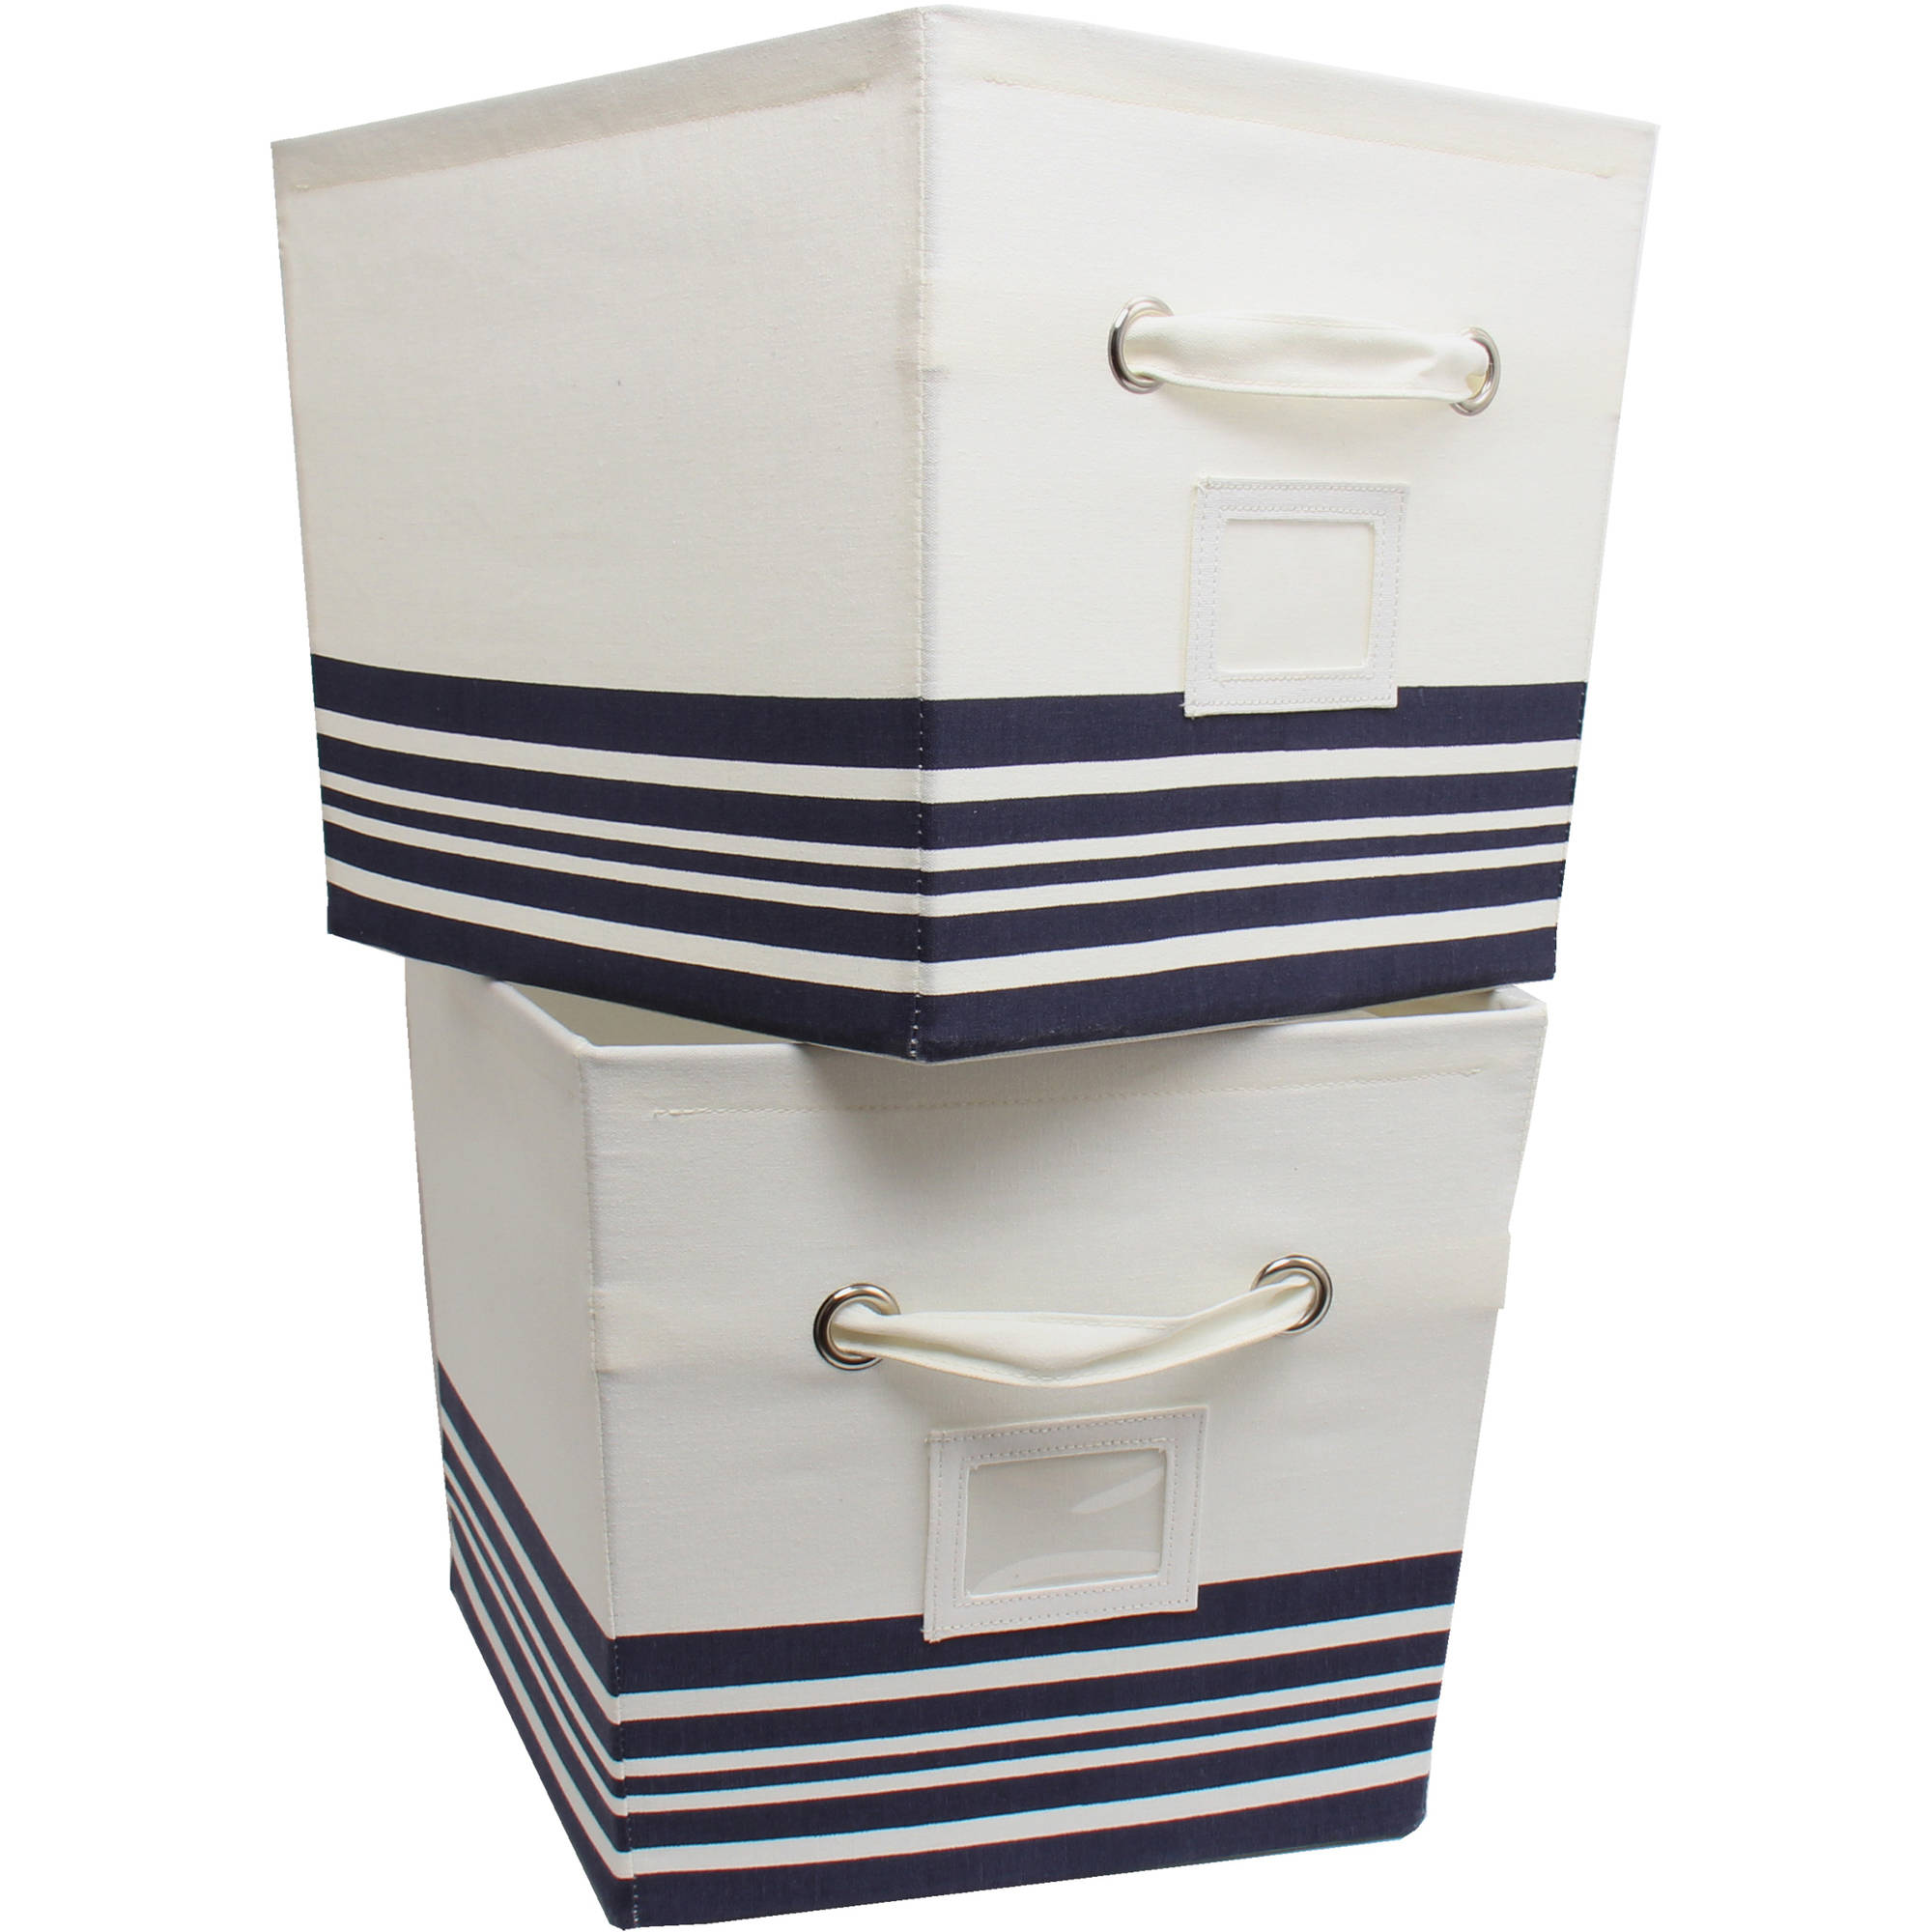 Mainstays Large Canvas Bins, 2-Pack, Multiple Colors